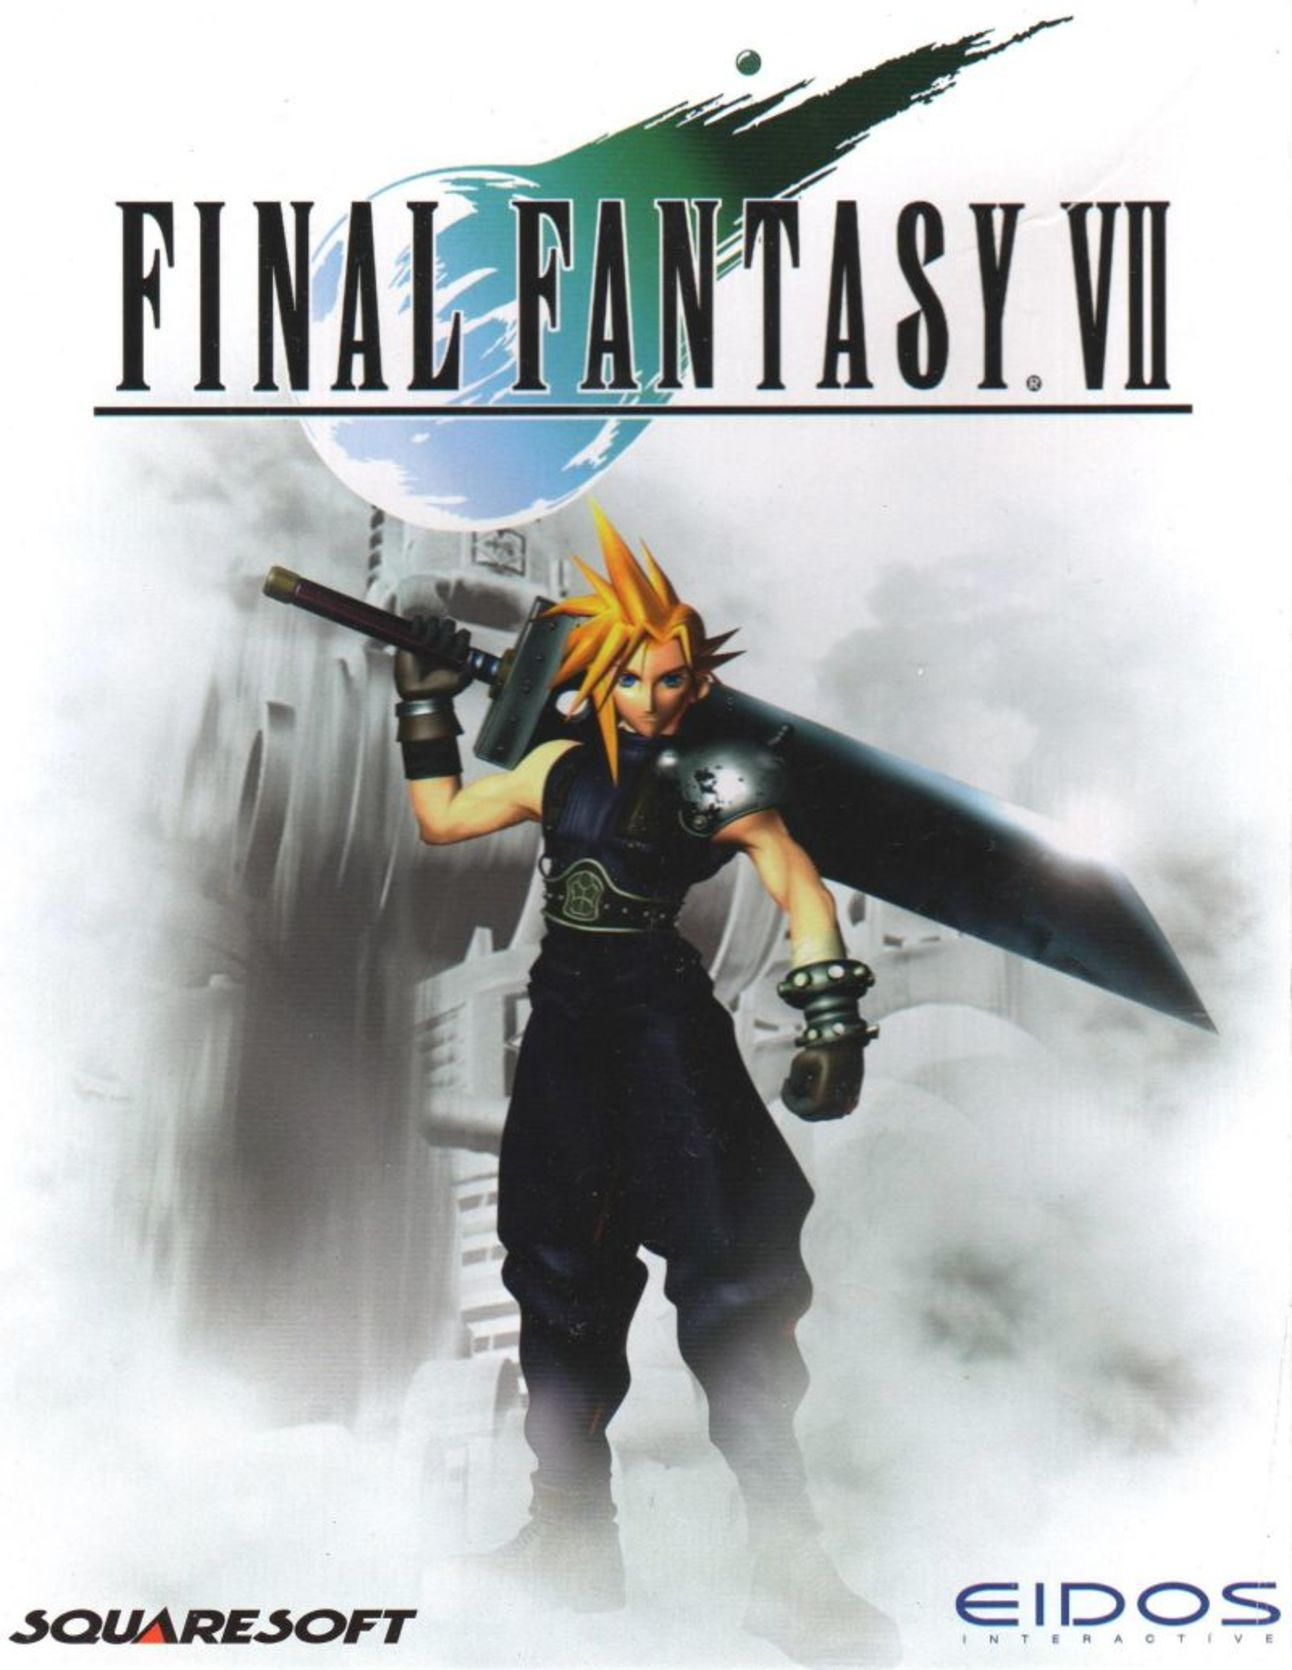 111355-final-fantasy-vii-windows-front-cover.jpg